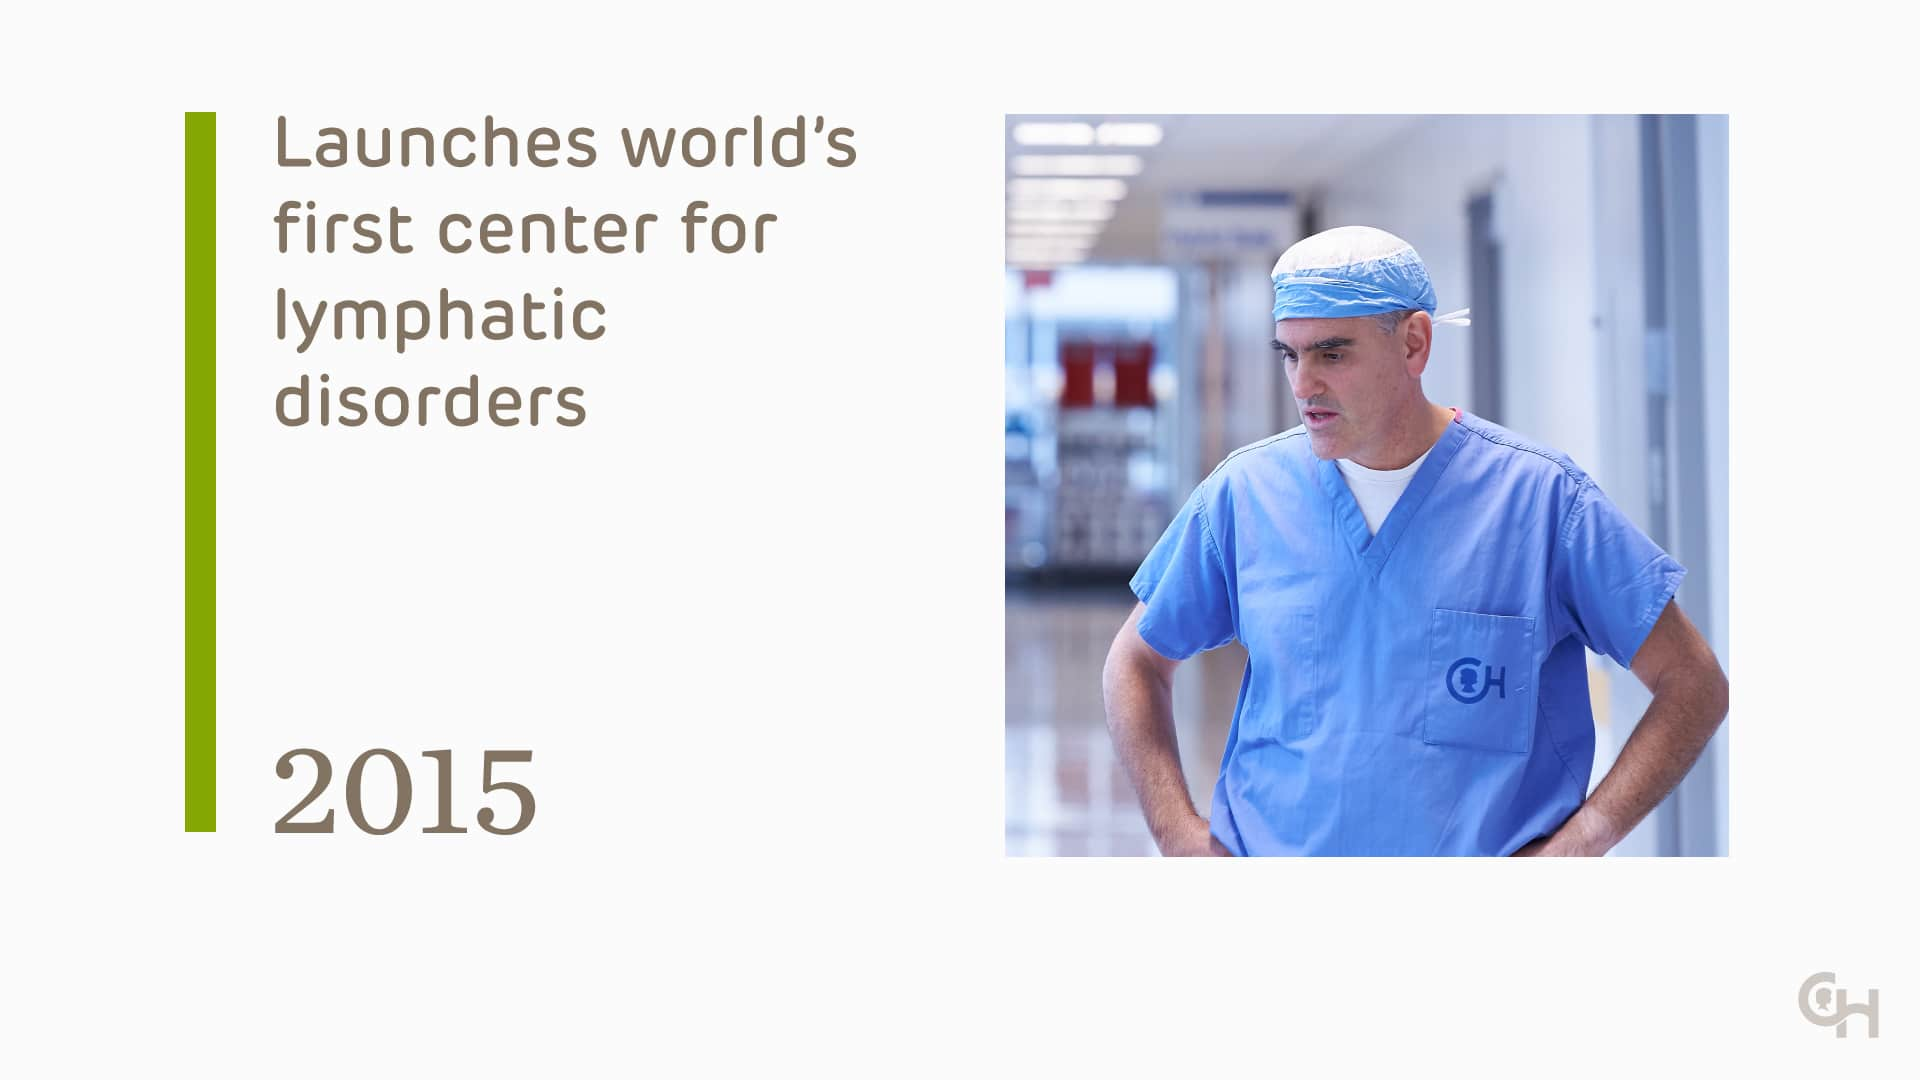 Launches world's first Center for Lymphatics Disorders - 2015